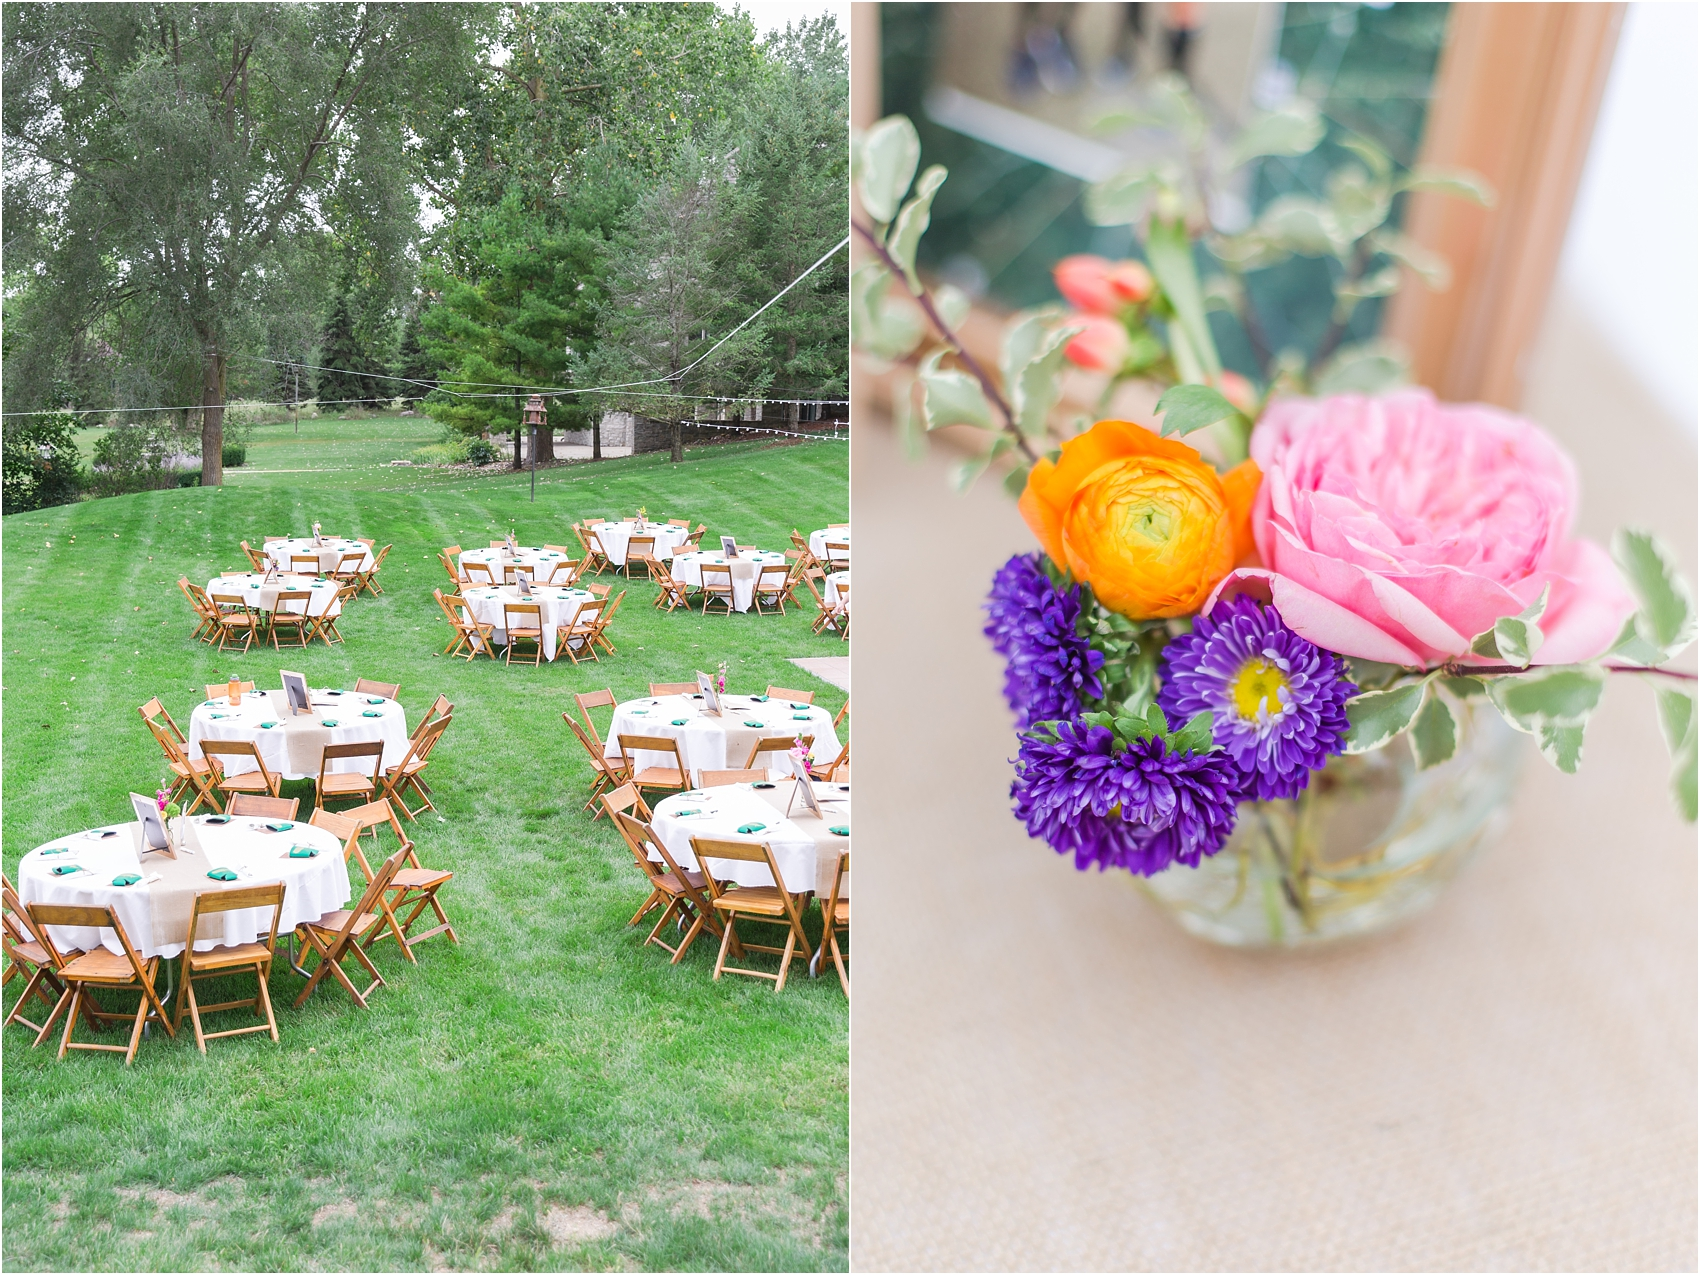 romantic-intimate-backyard-wedding-photos-at-private-estate-in-ann-arbor-mi-by-courtney-carolyn-photography_0072.jpg